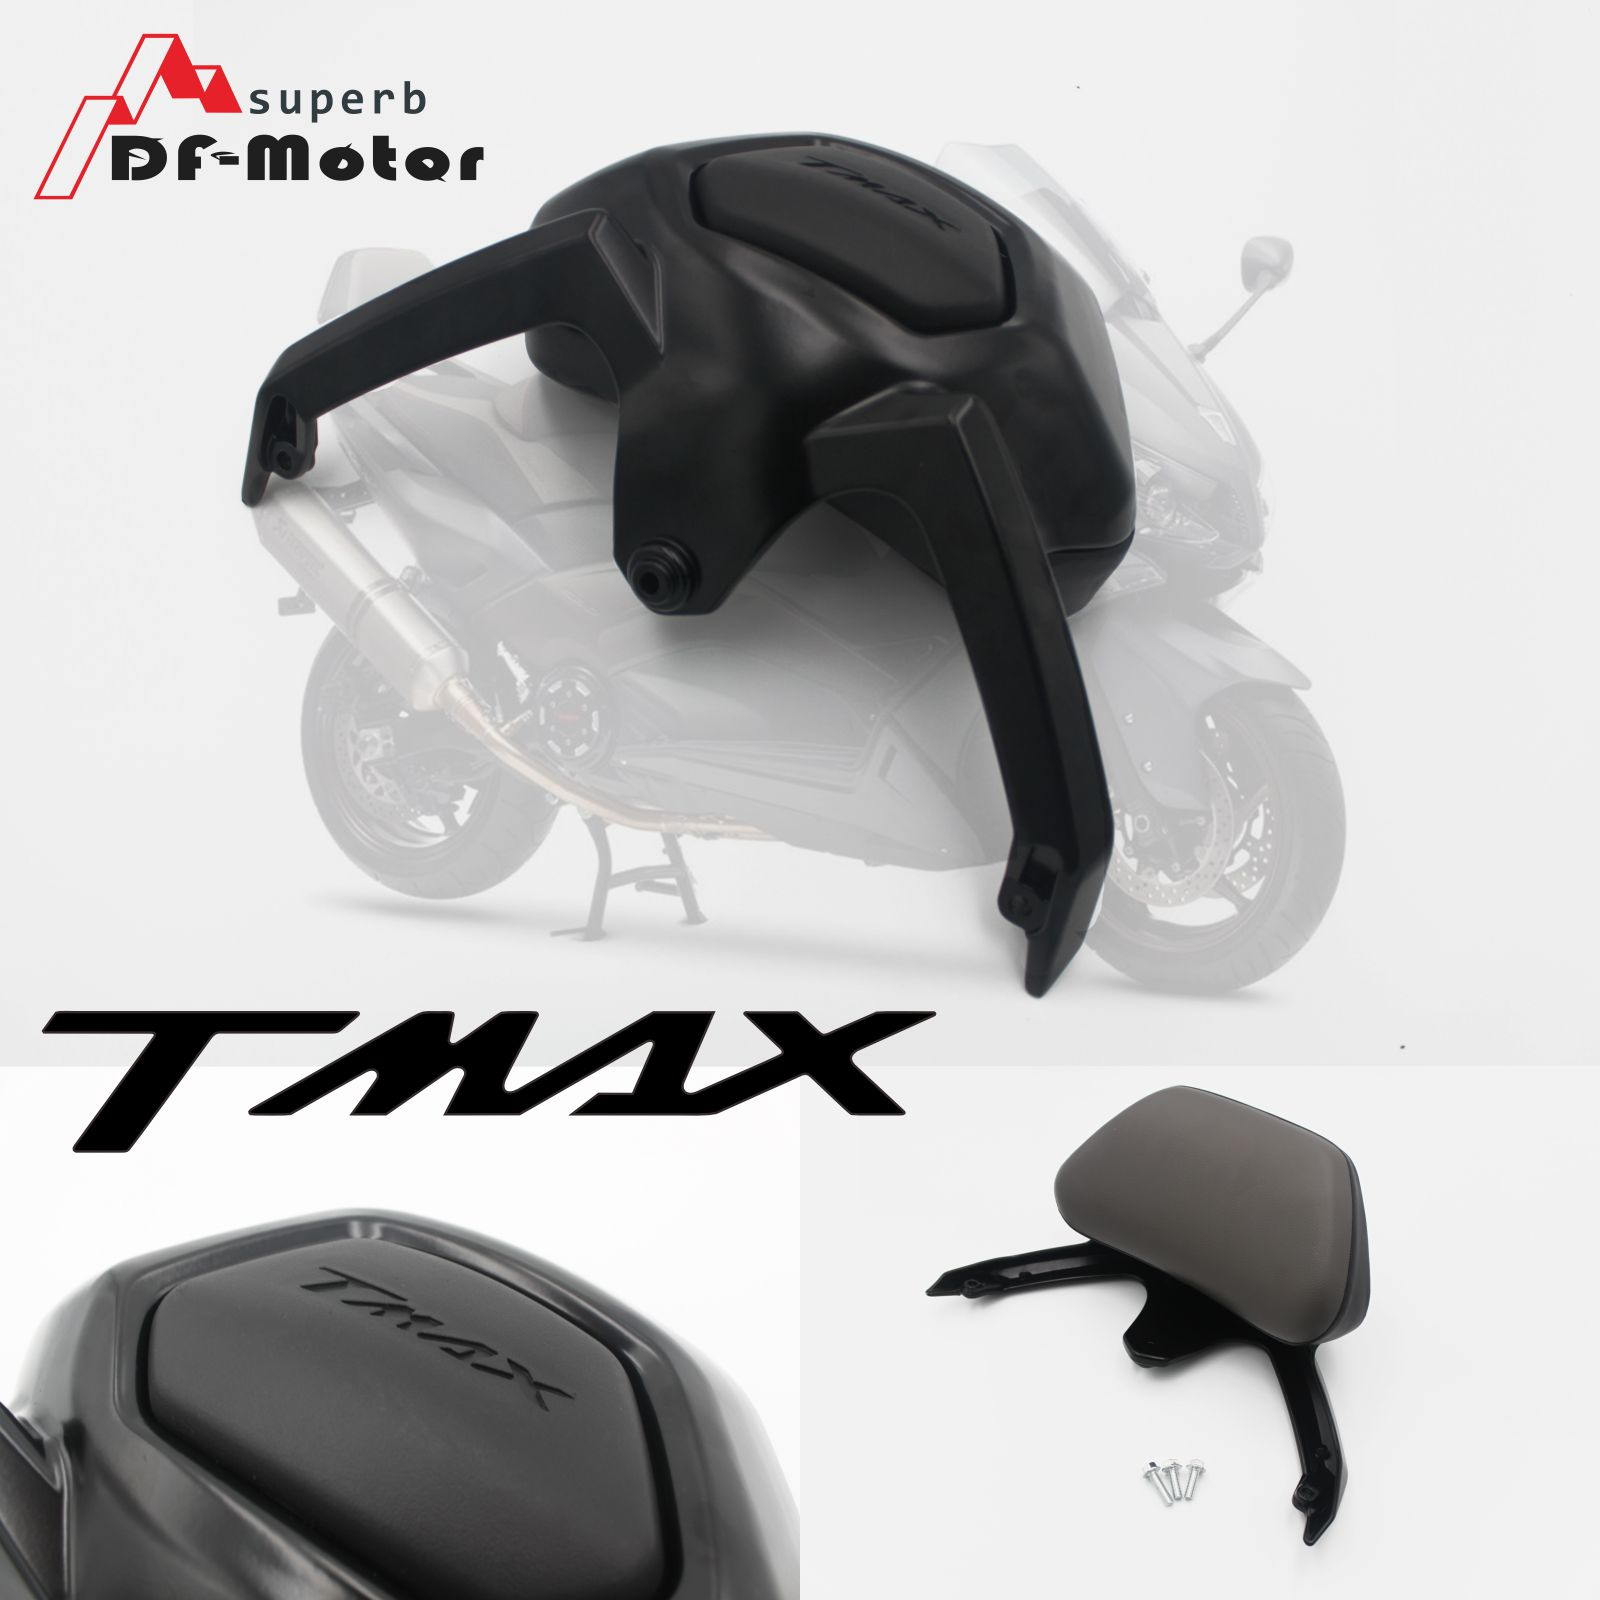 For YAMAHA T-MAX TMAX 530 TMAX530 2012 2013 2014 2015 2016 Motorcycle Accessories Backrest Passenger Backrest Stay Black Silver